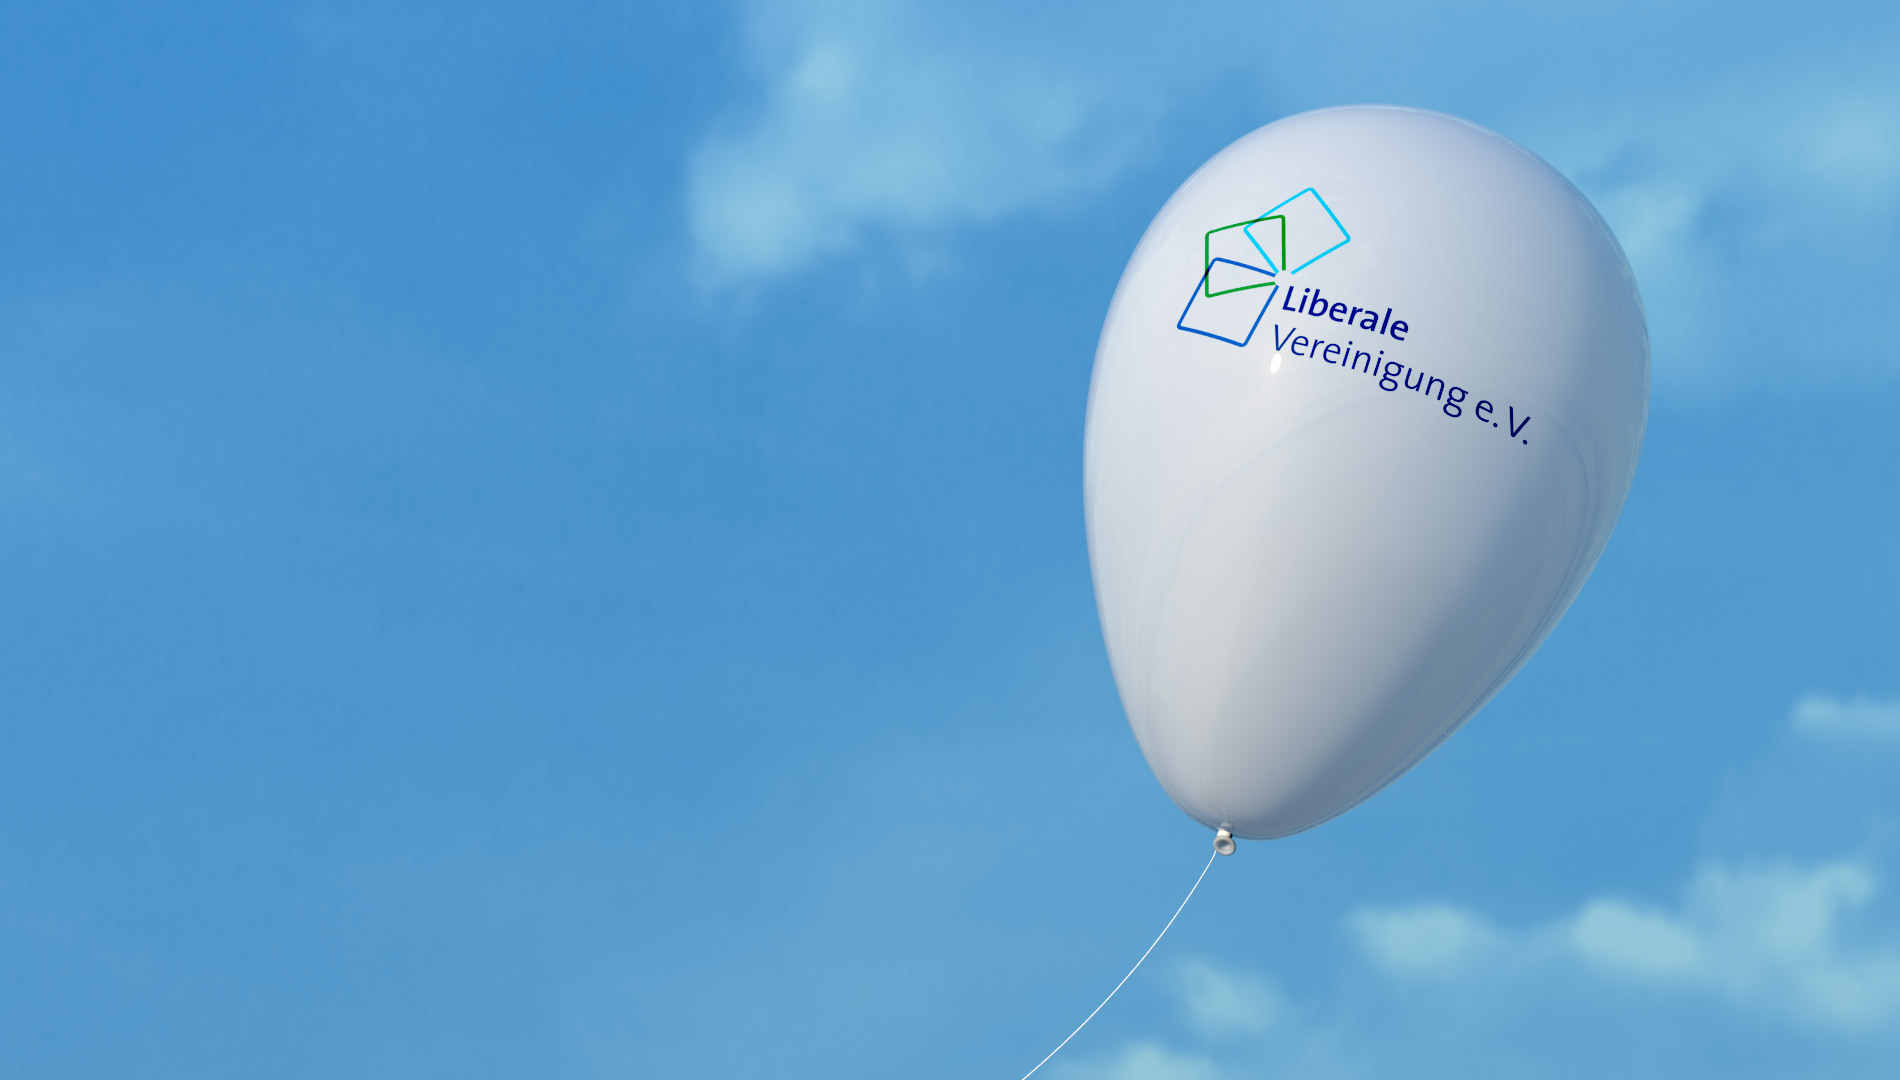 balloon_liberaleVereinigung